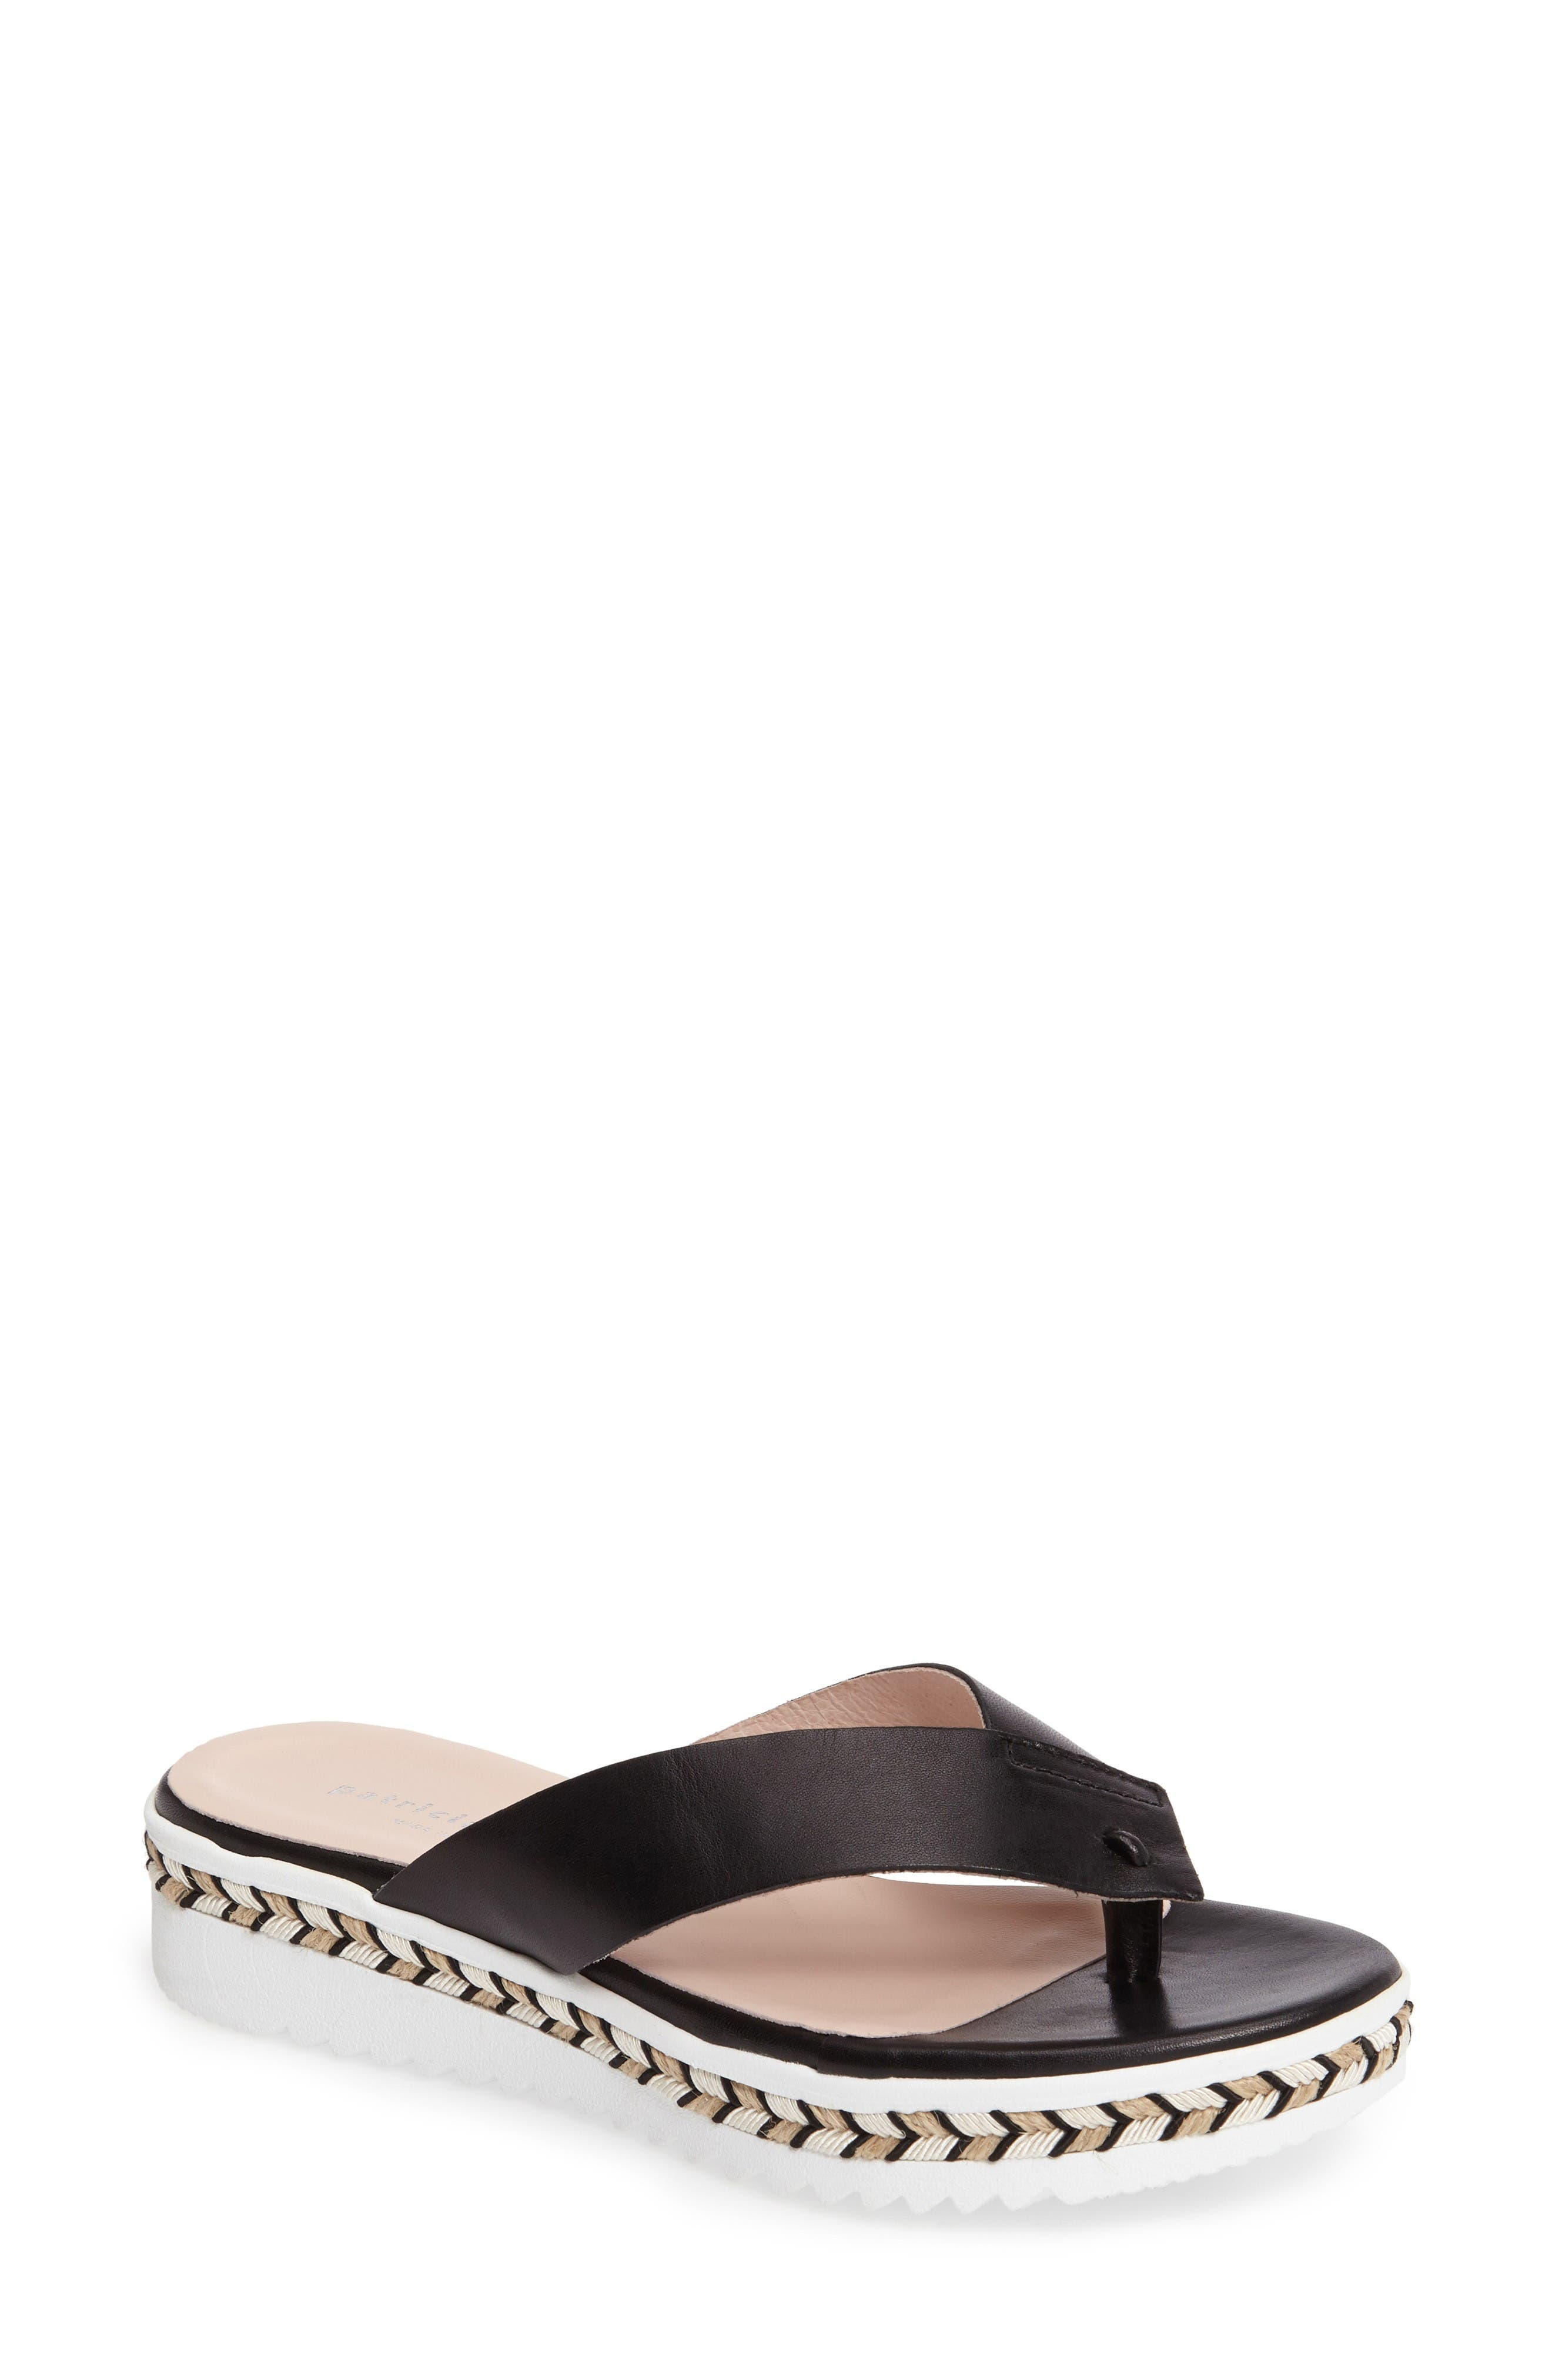 Brooklyn Wedge Flip Flop,                         Main,                         color, Black Leather